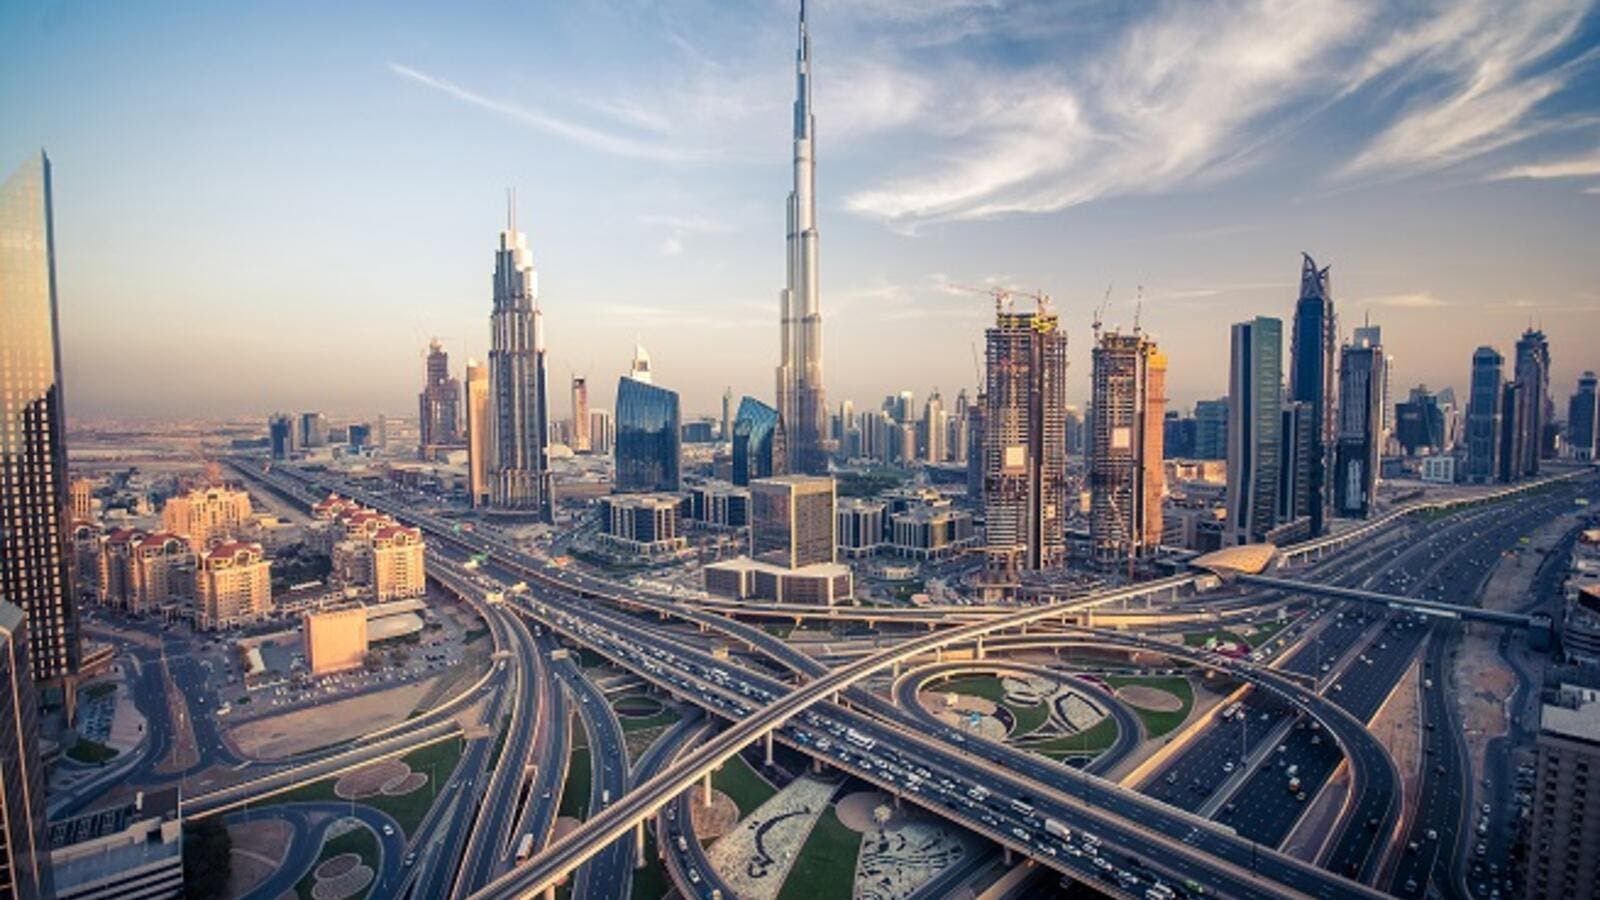 Expo 2020: 10 Mega Projects Set to Redesign Dubai's